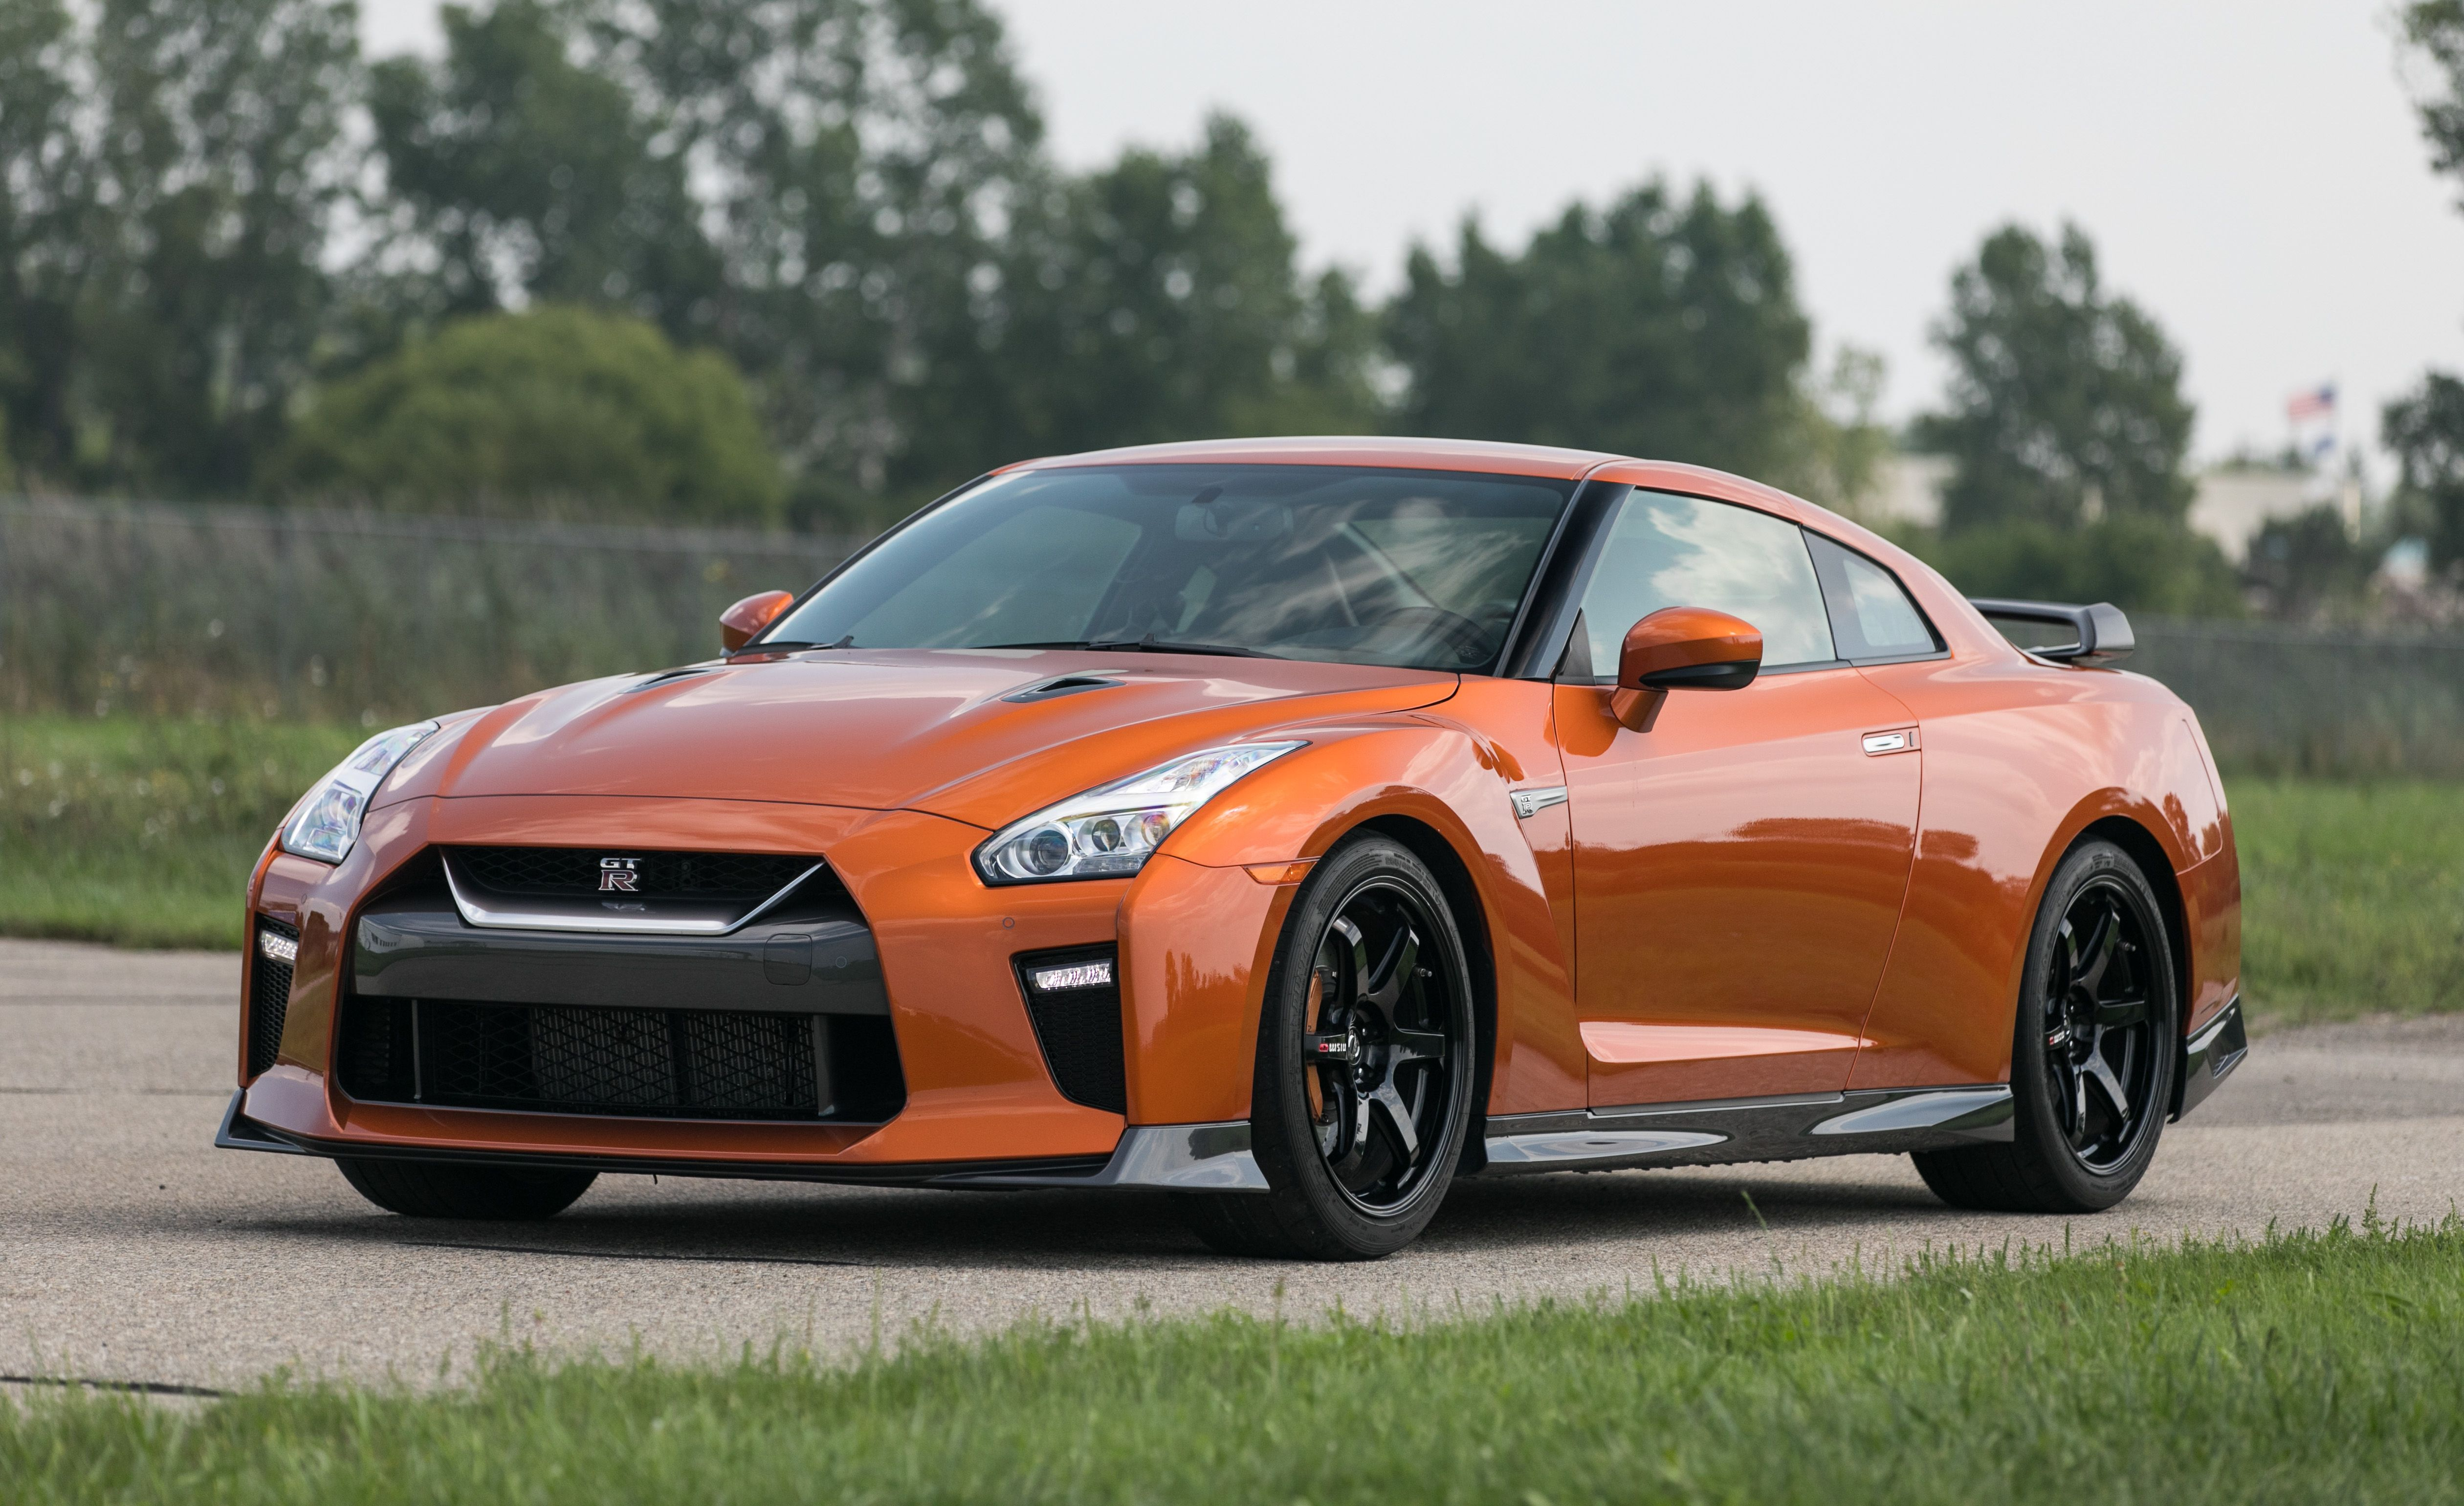 2019 Nissan Gt R Review Pricing And Specs